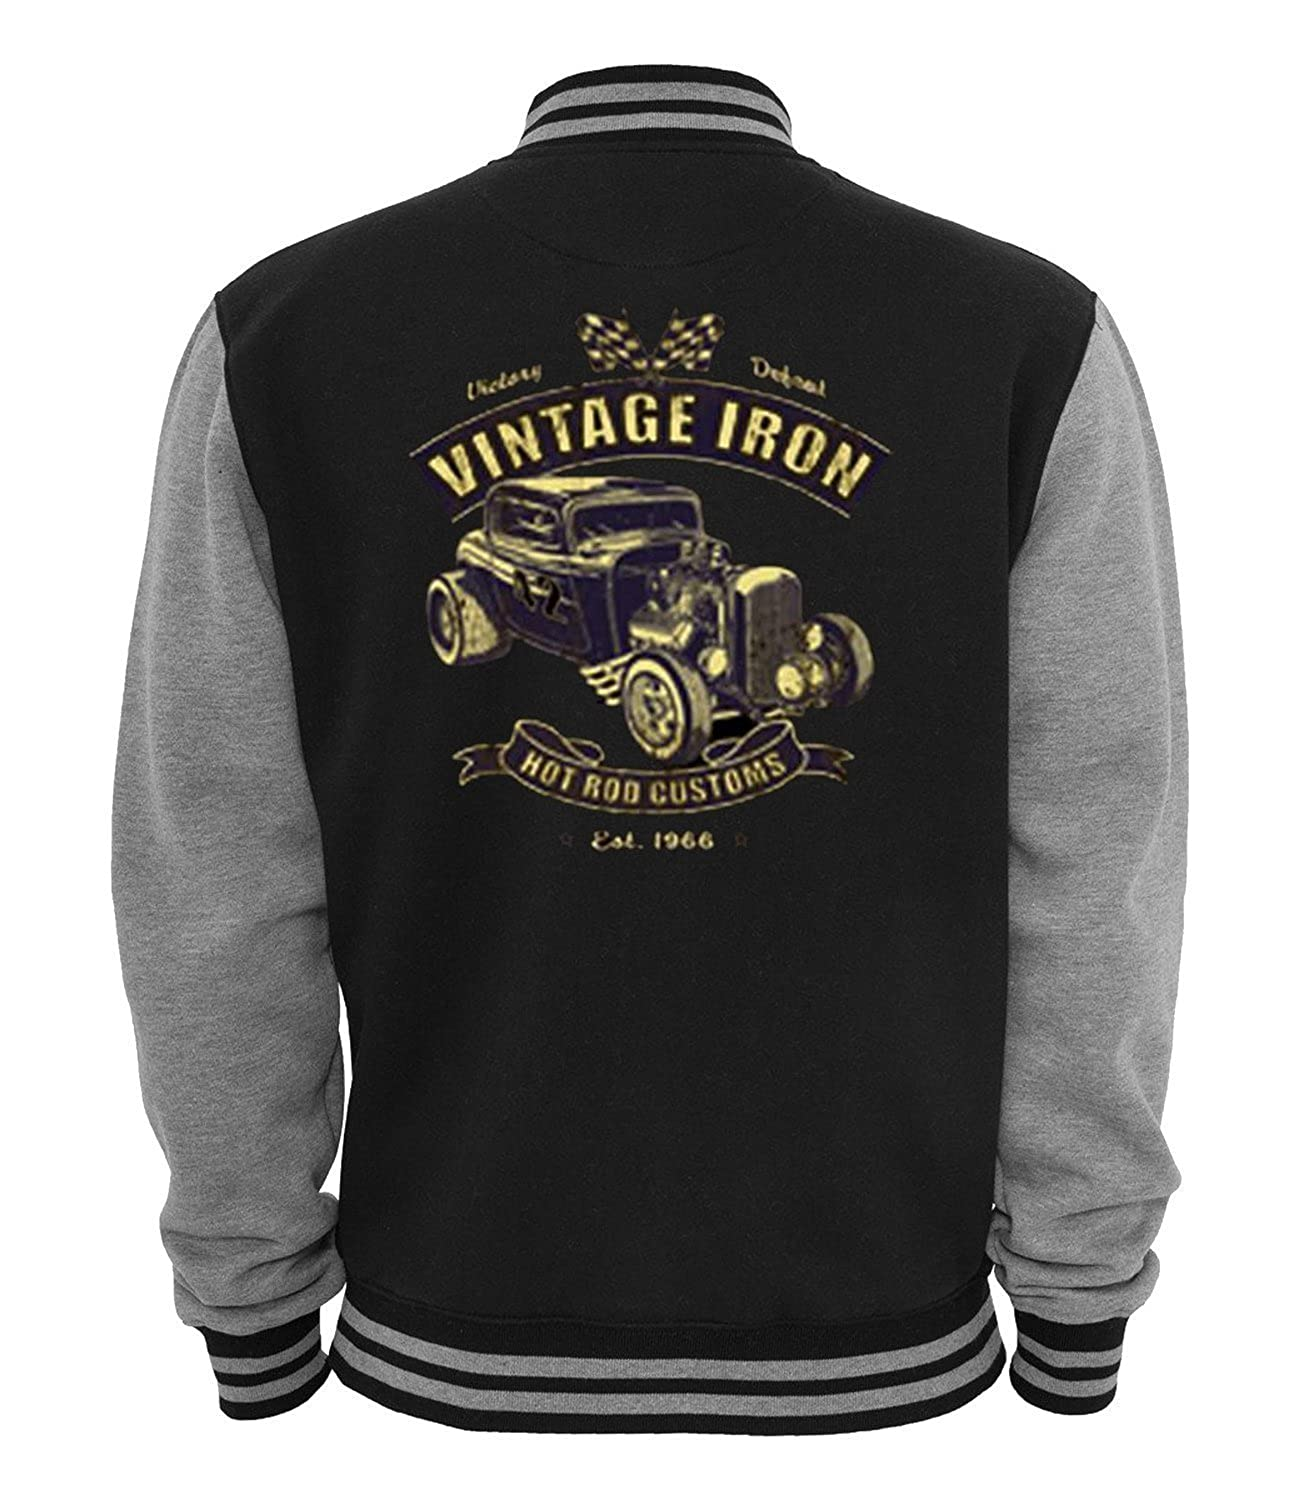 1950s Men's Clothing Vintage Iron - Mens Hot Rod Varsity Jacket Old School Rockabilly Retro Style $36.50 AT vintagedancer.com